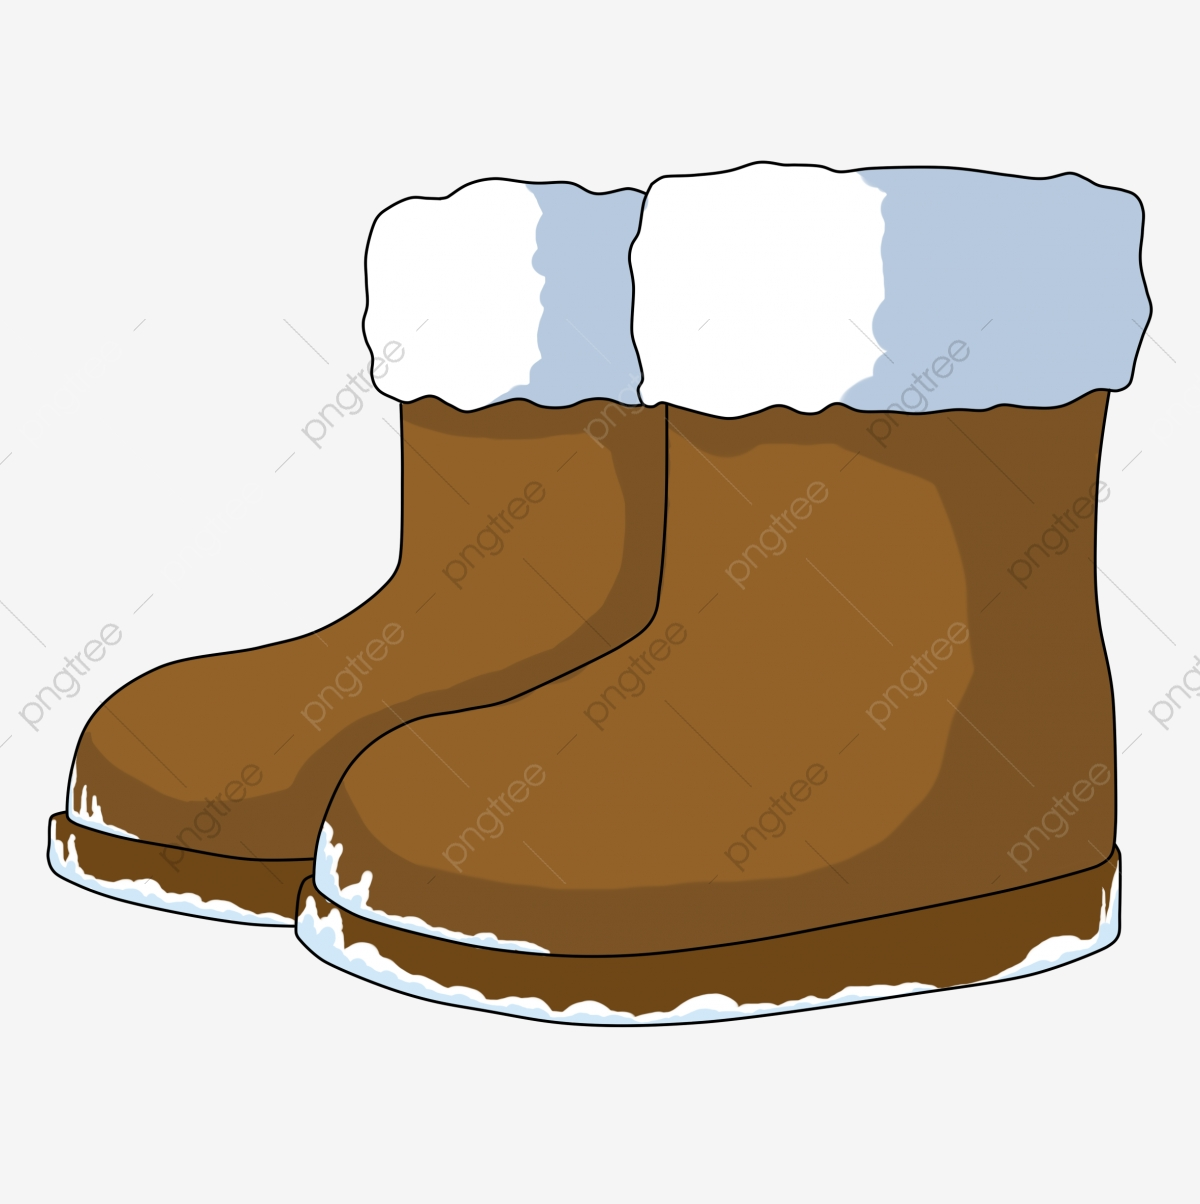 Cartoon Winter Small Things Snow Boots Brown Boots Keep Warm, Lovely ... download